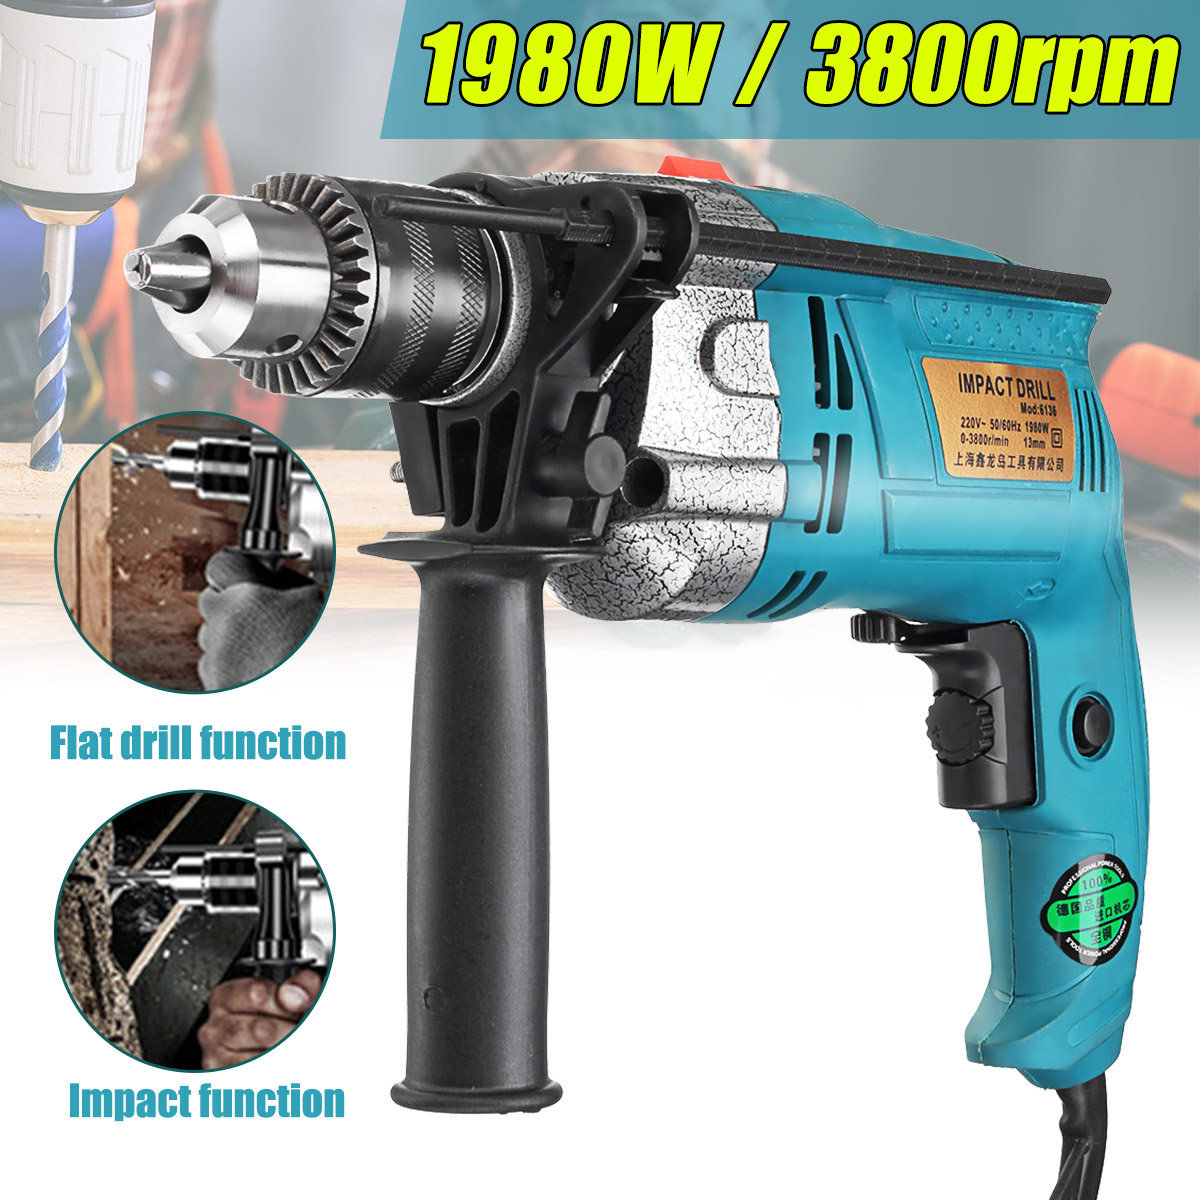 Drillpro 1980W Electric Brushless Handheld Impact Flat Drill Guns 220V Hand Drill Torque Driver with Wrench Measuring Scale